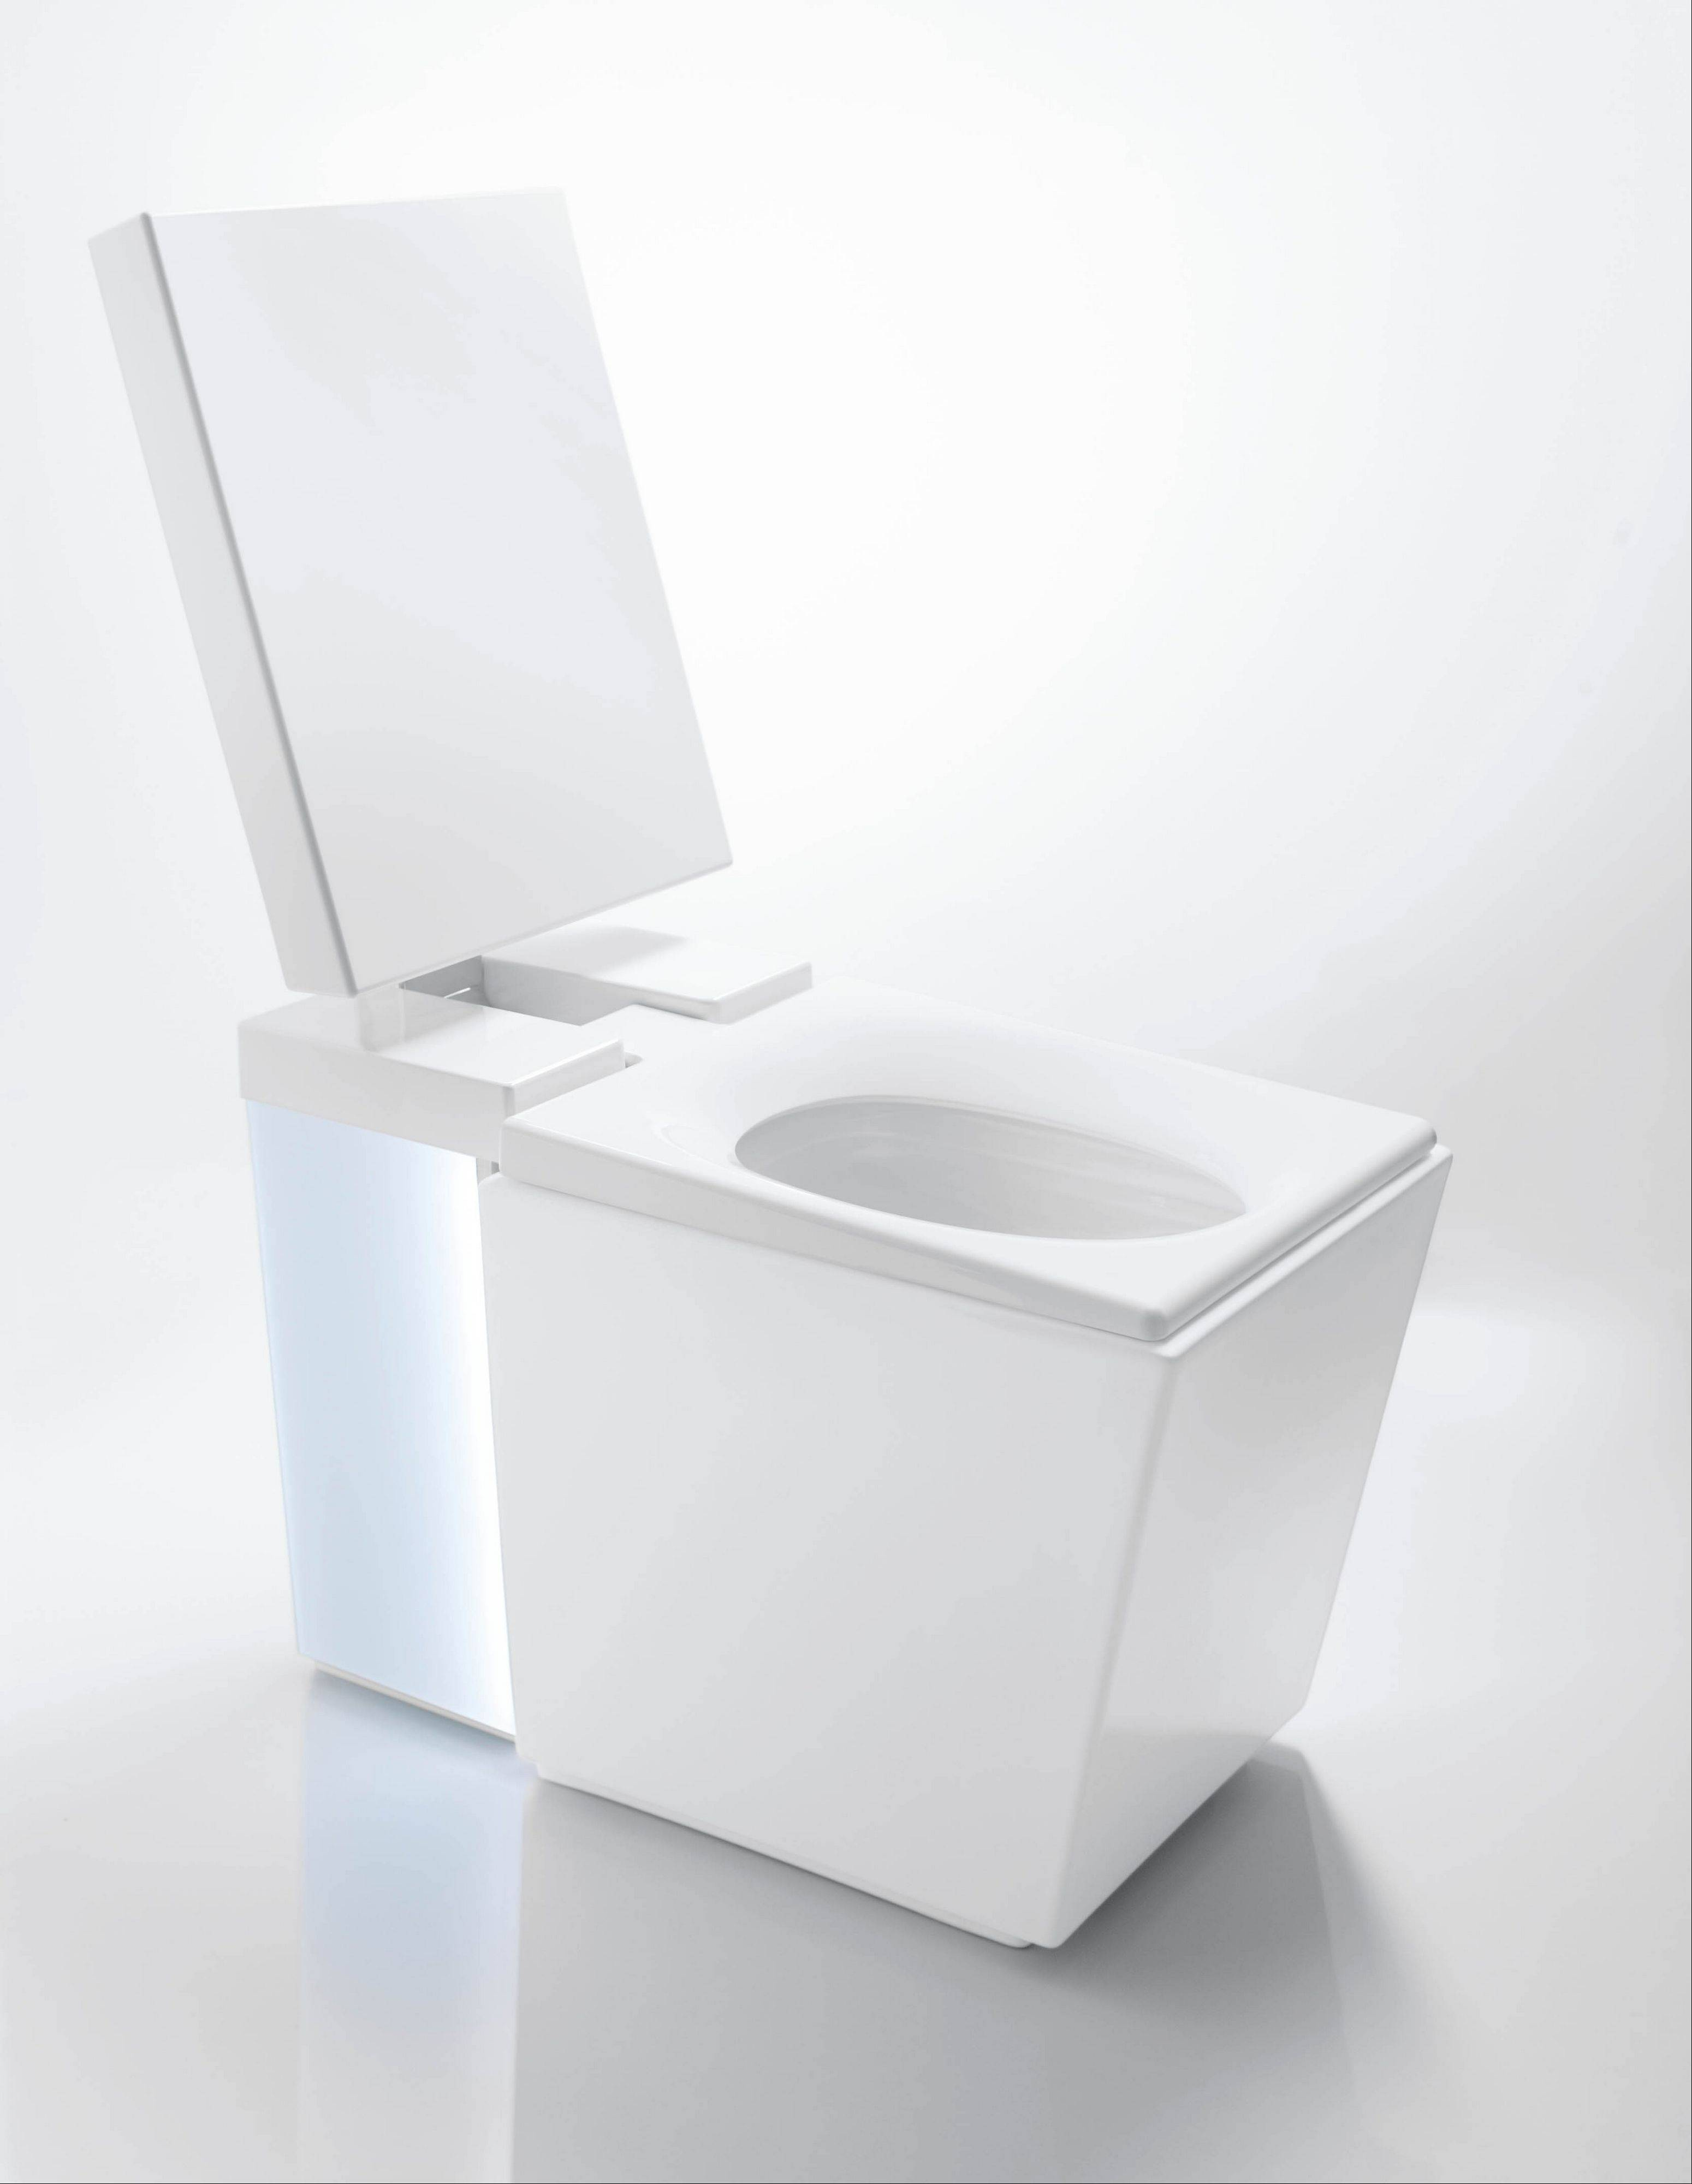 Not only do these electronic toilets flush themselves, some models feature complete audio systems with AM/FM radio and an auxiliary input to play your stored music and podcasts.